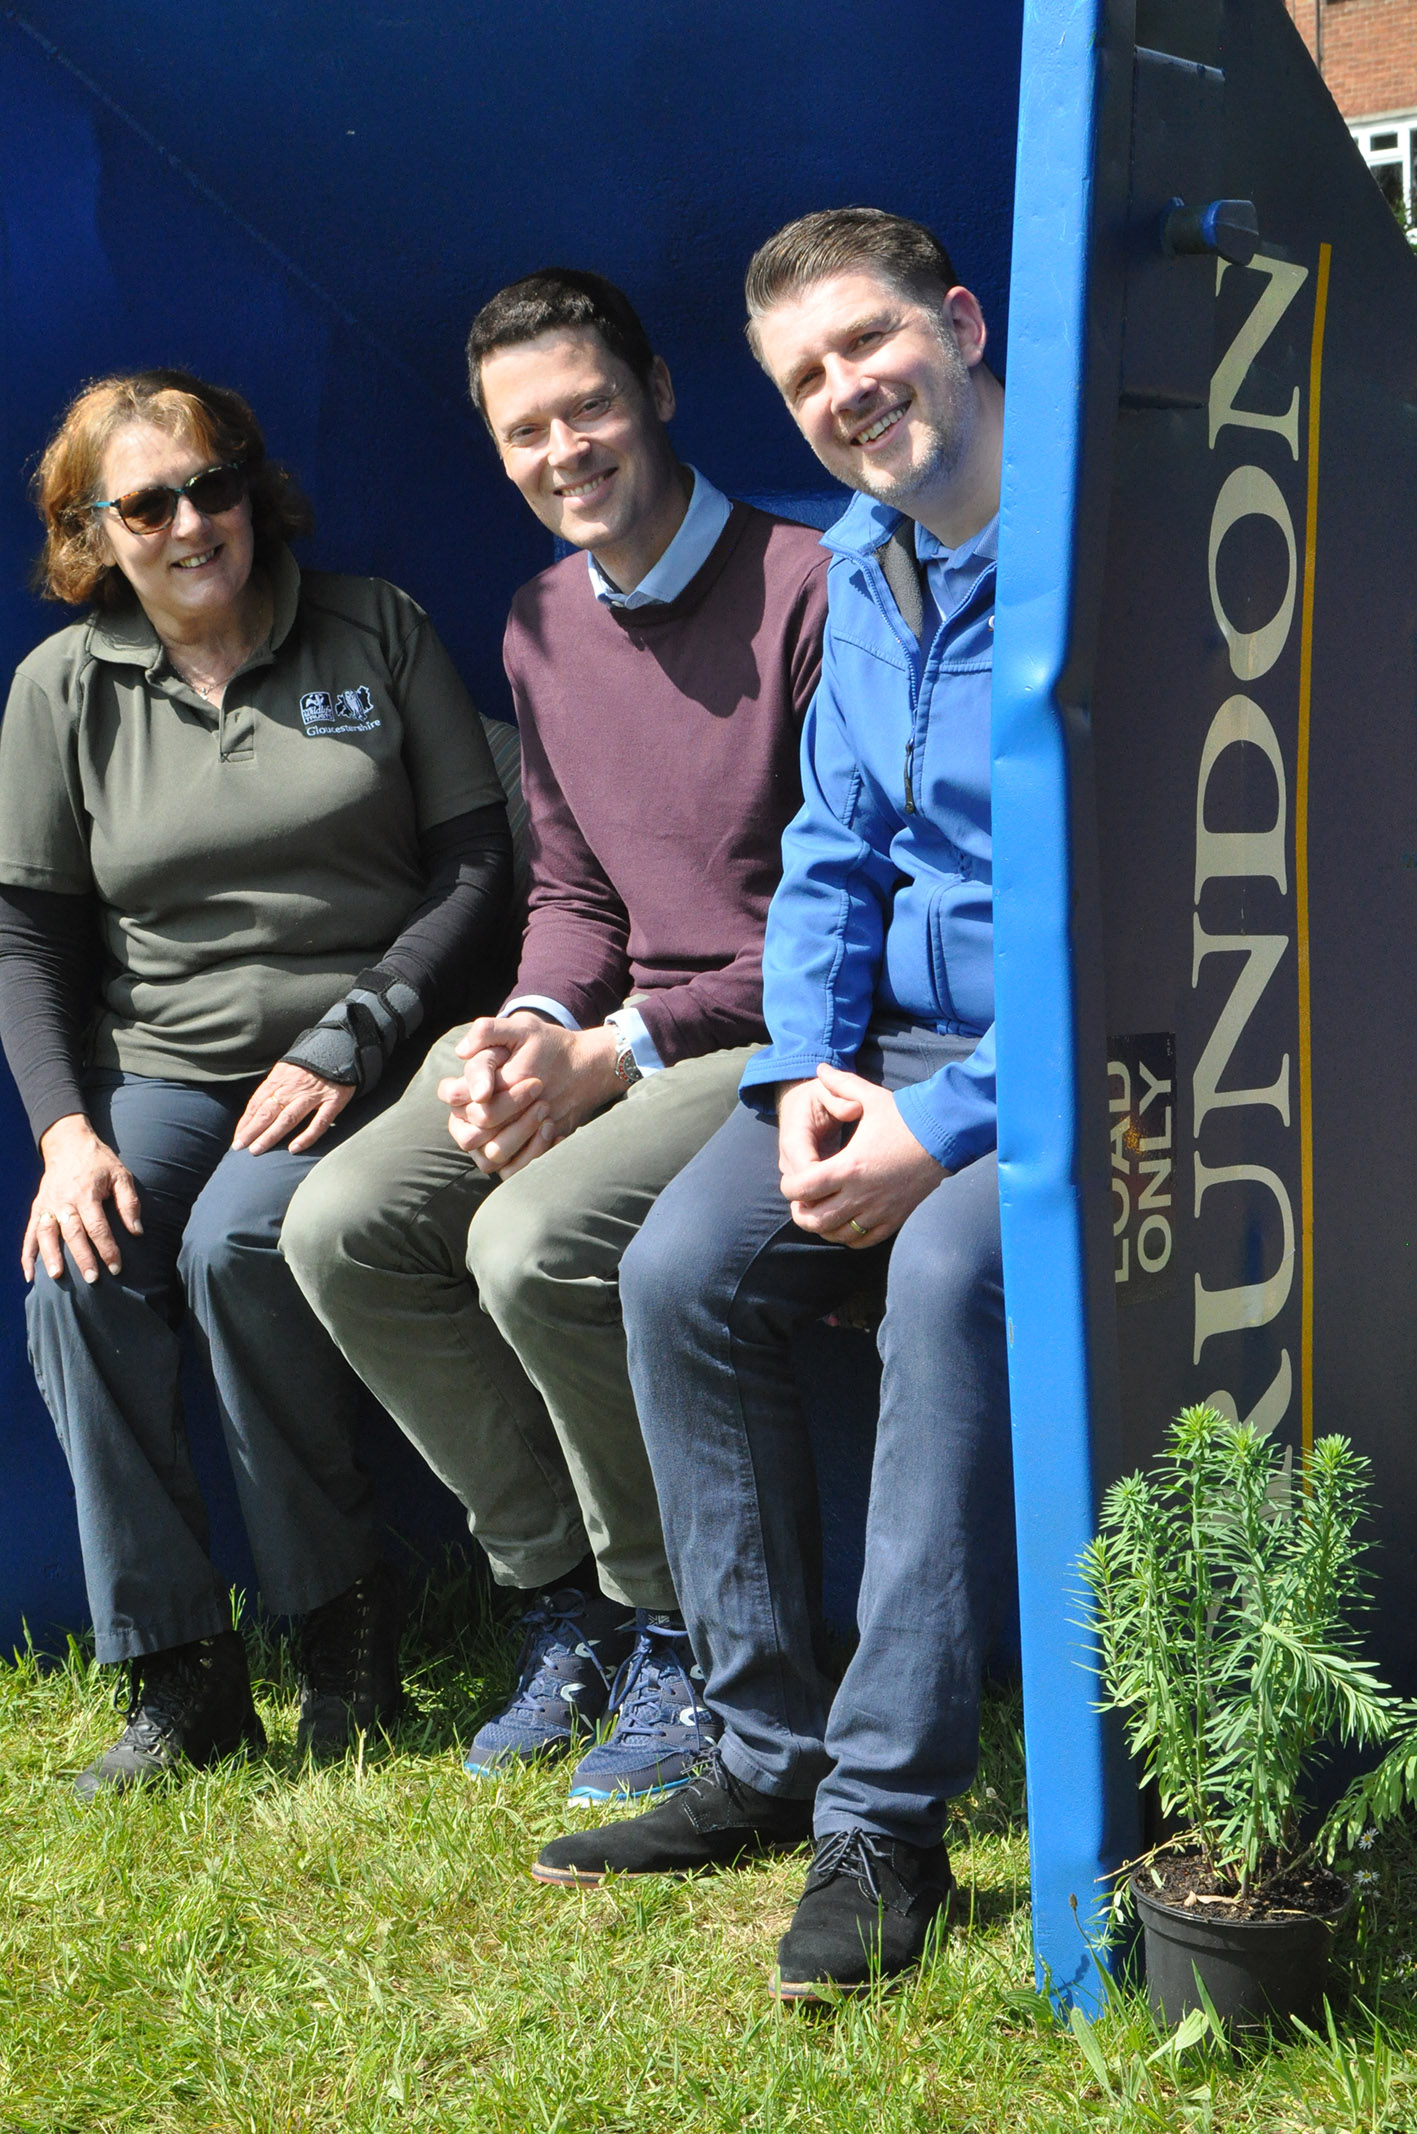 Jo Worthy-Jones, Alex Chalk MP and Anthony Foxlee-Brown, Head of Marketing & Communications at Grundon, attended the Open Day on Saturday 11 May 2019